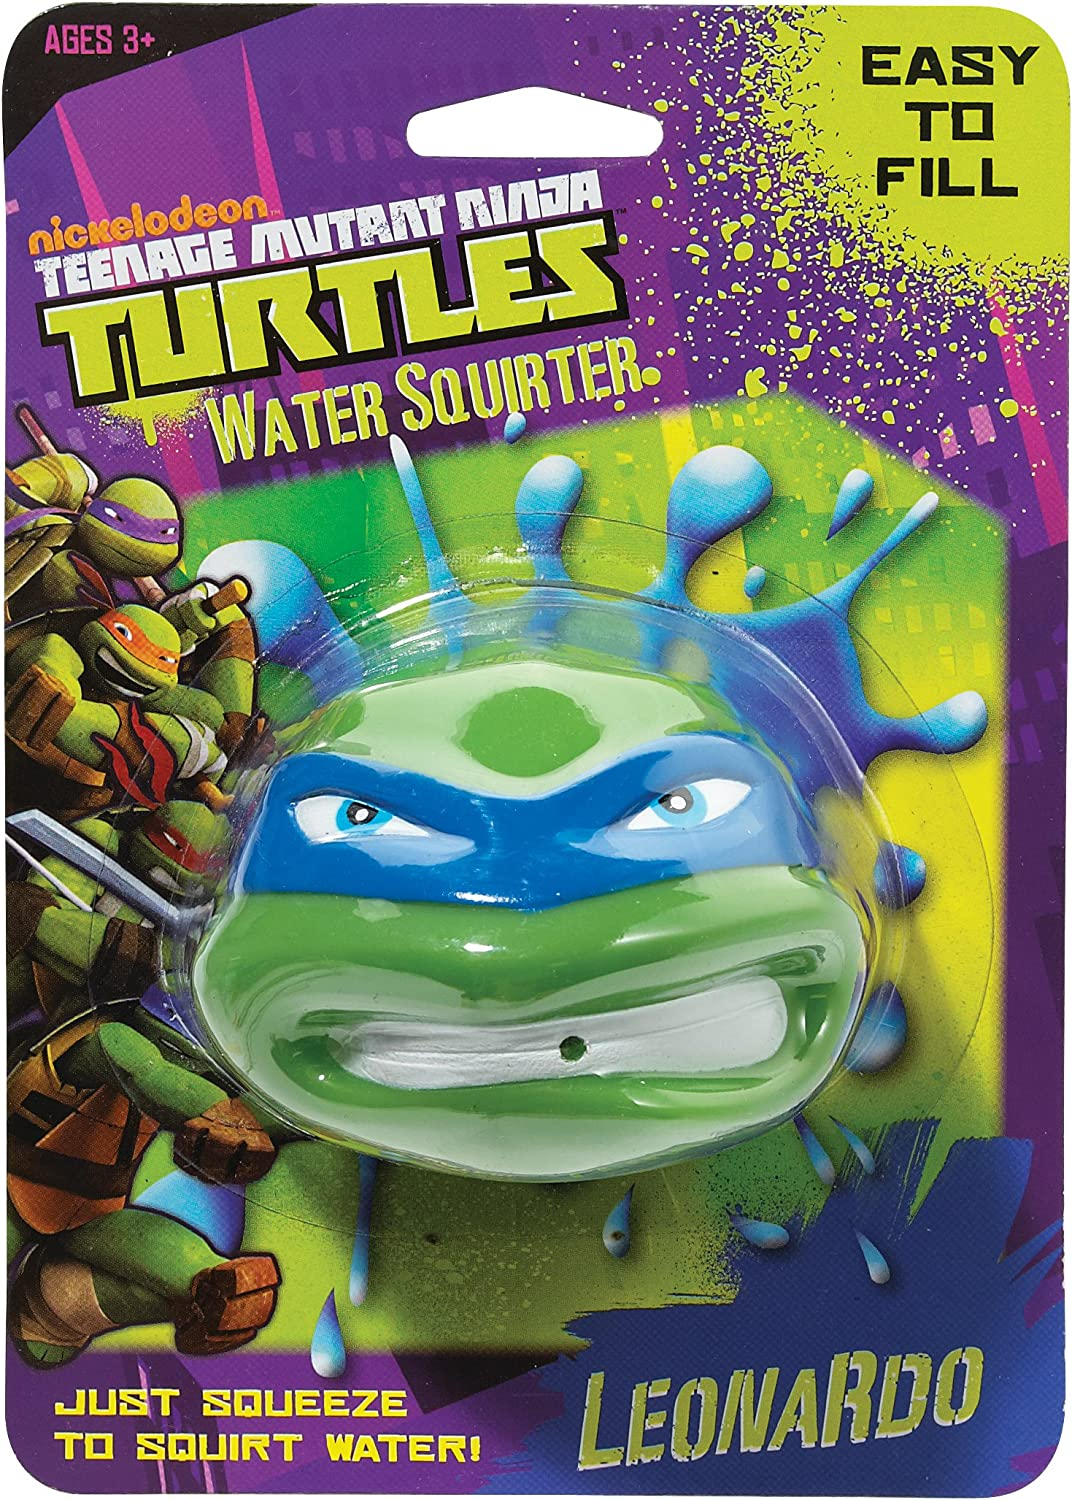 Little Kids Teenage Michelangelo Mutant Ninja Turtles Water Squirter